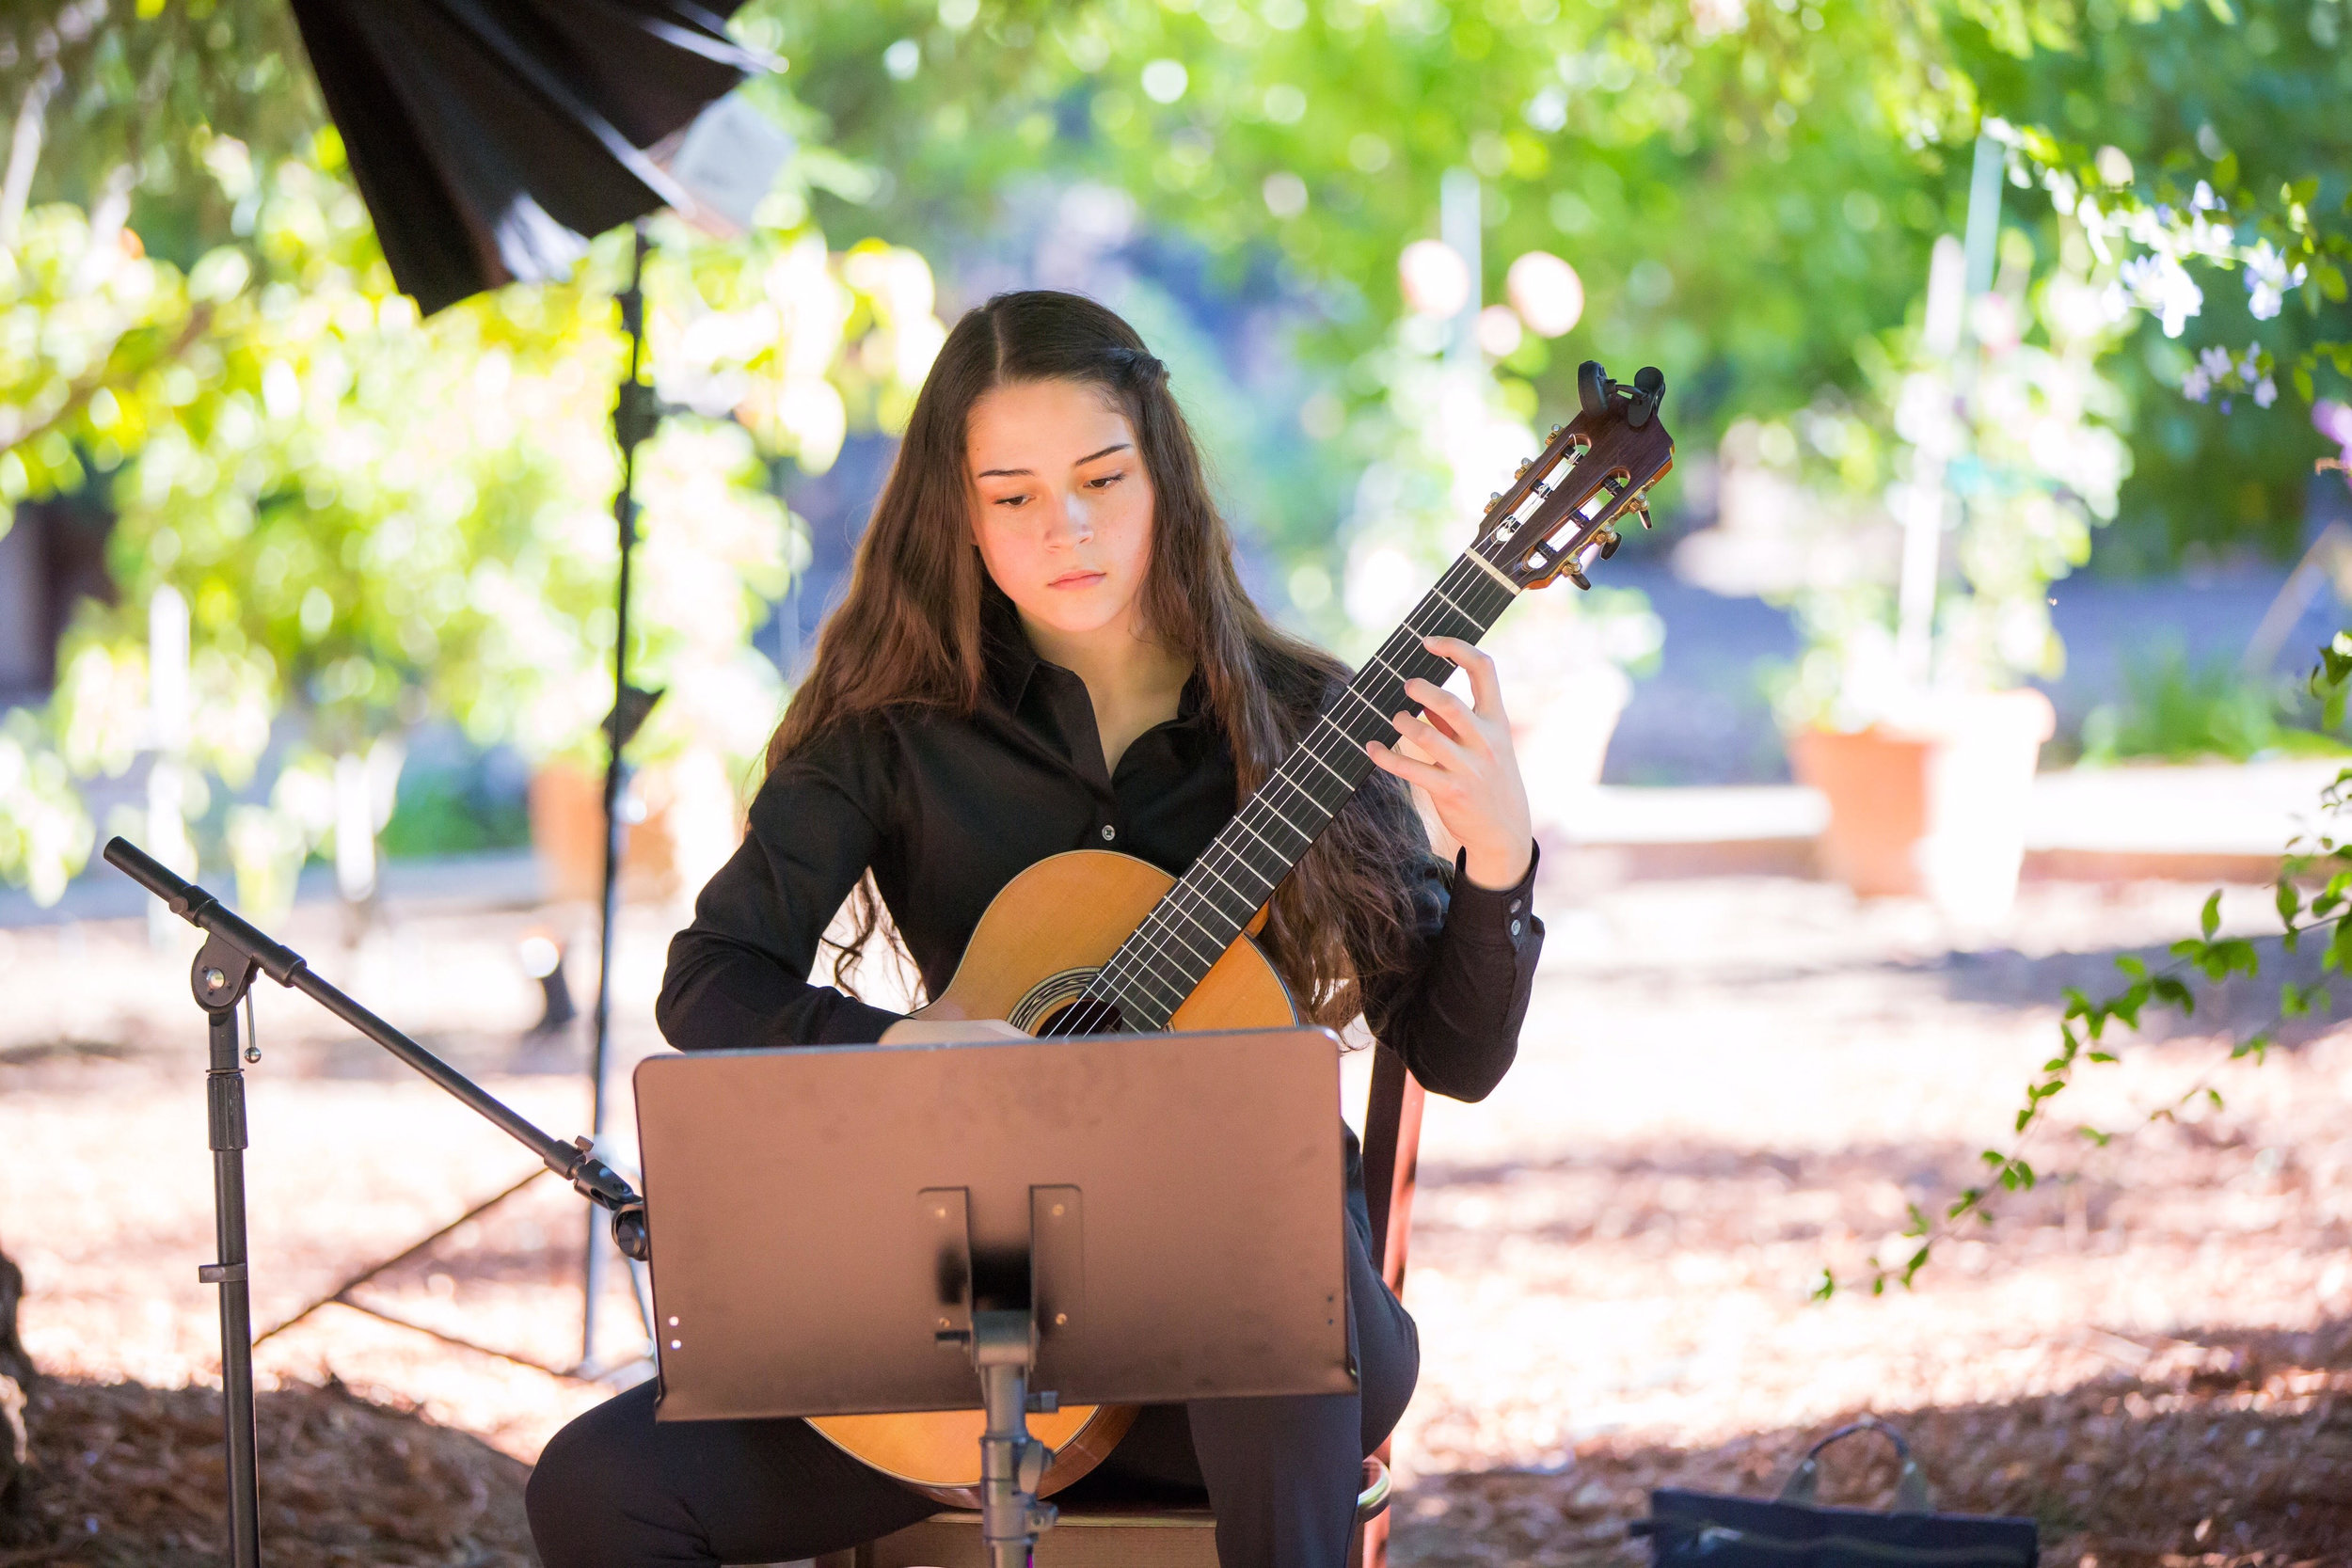 Guitar Lessons Redwood City, Guitar Lessons Santa Clara